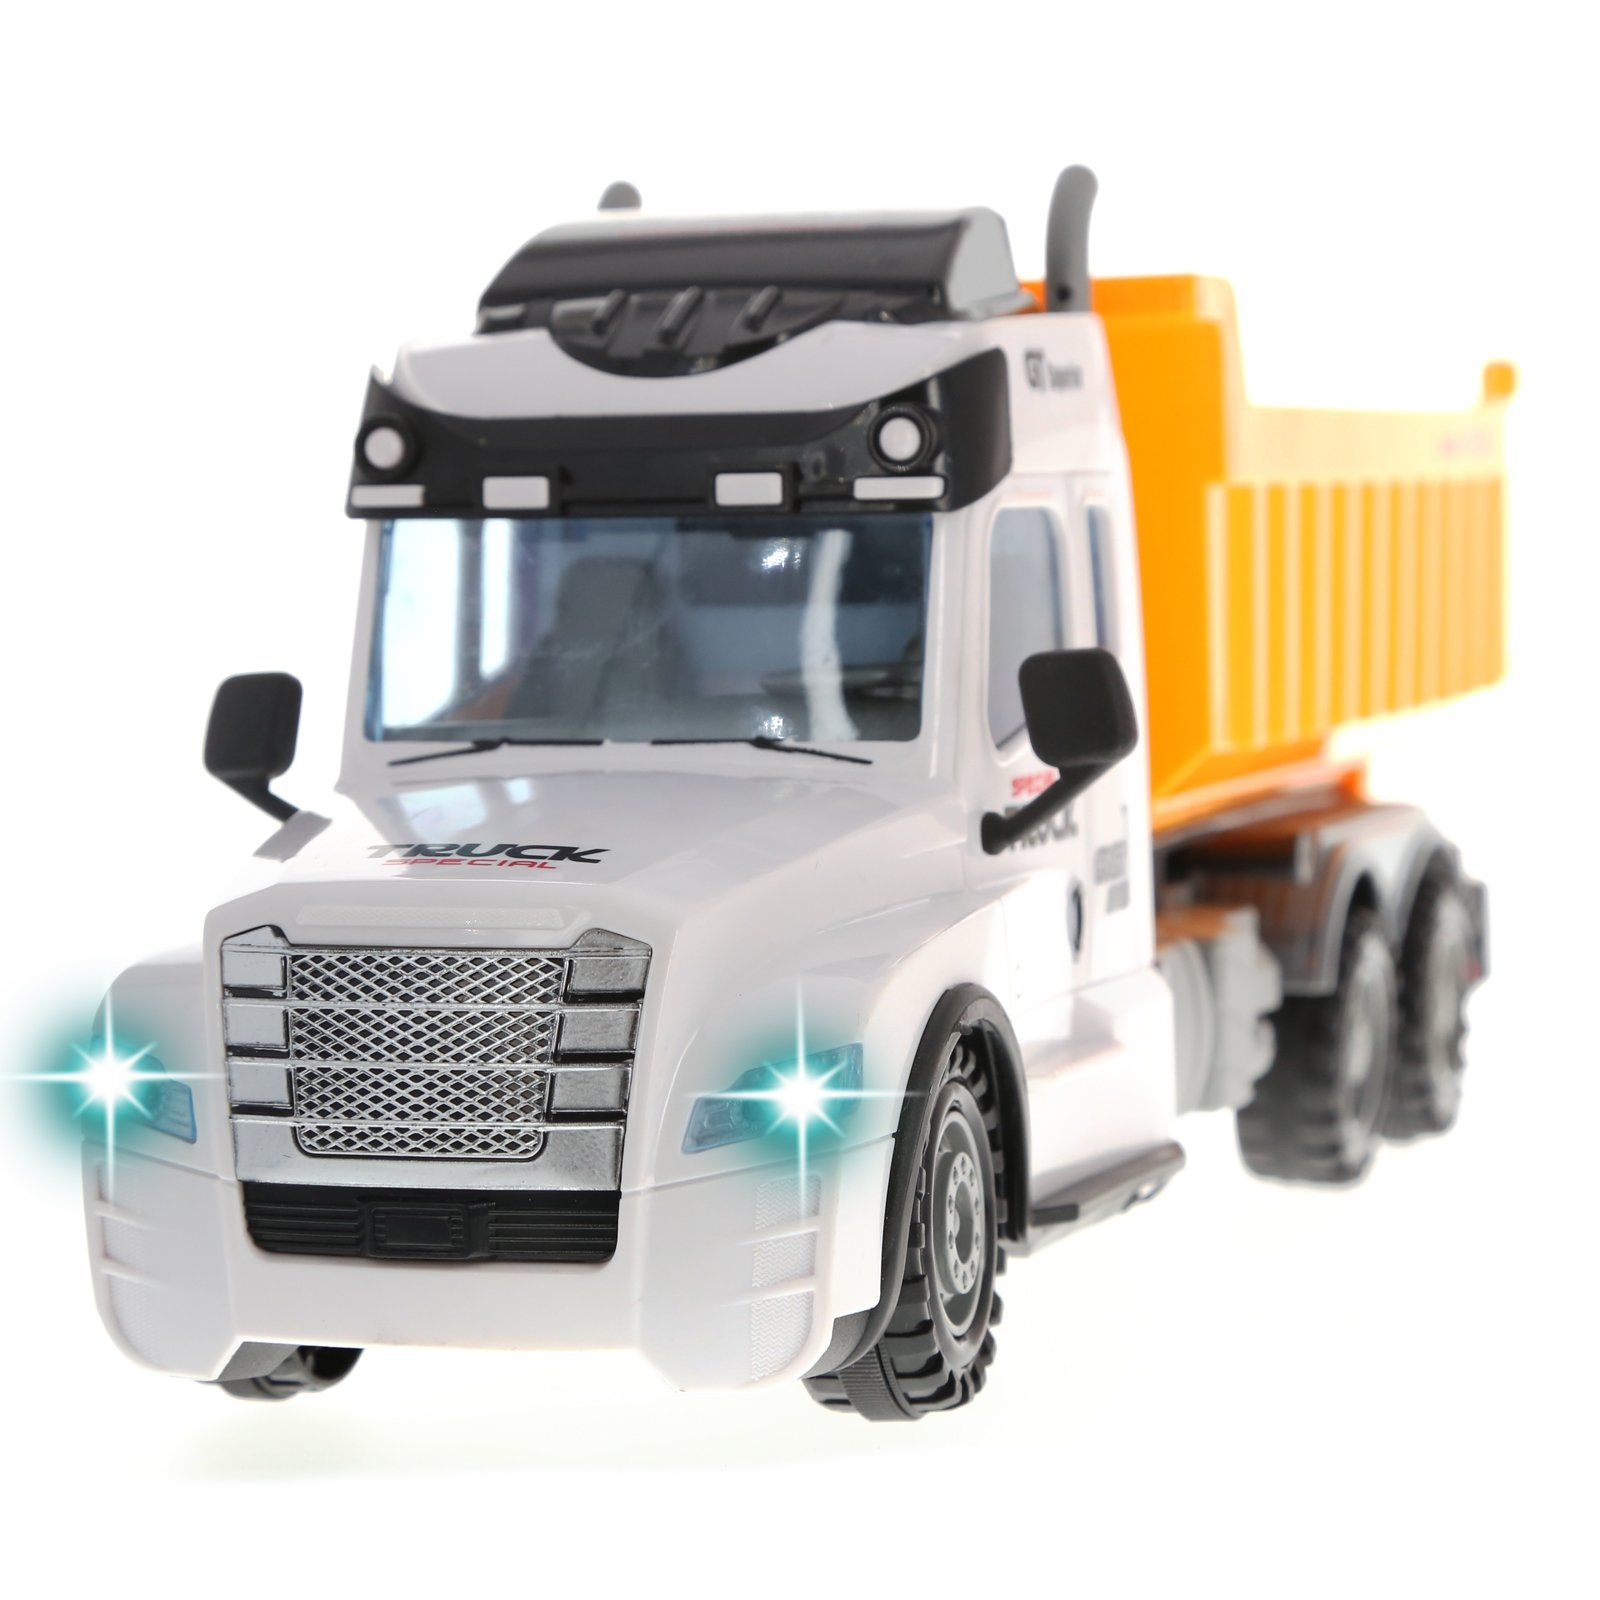 Kidplay RC Remote Control Dump Truck Construction Vehicle Light Up Kids Toy